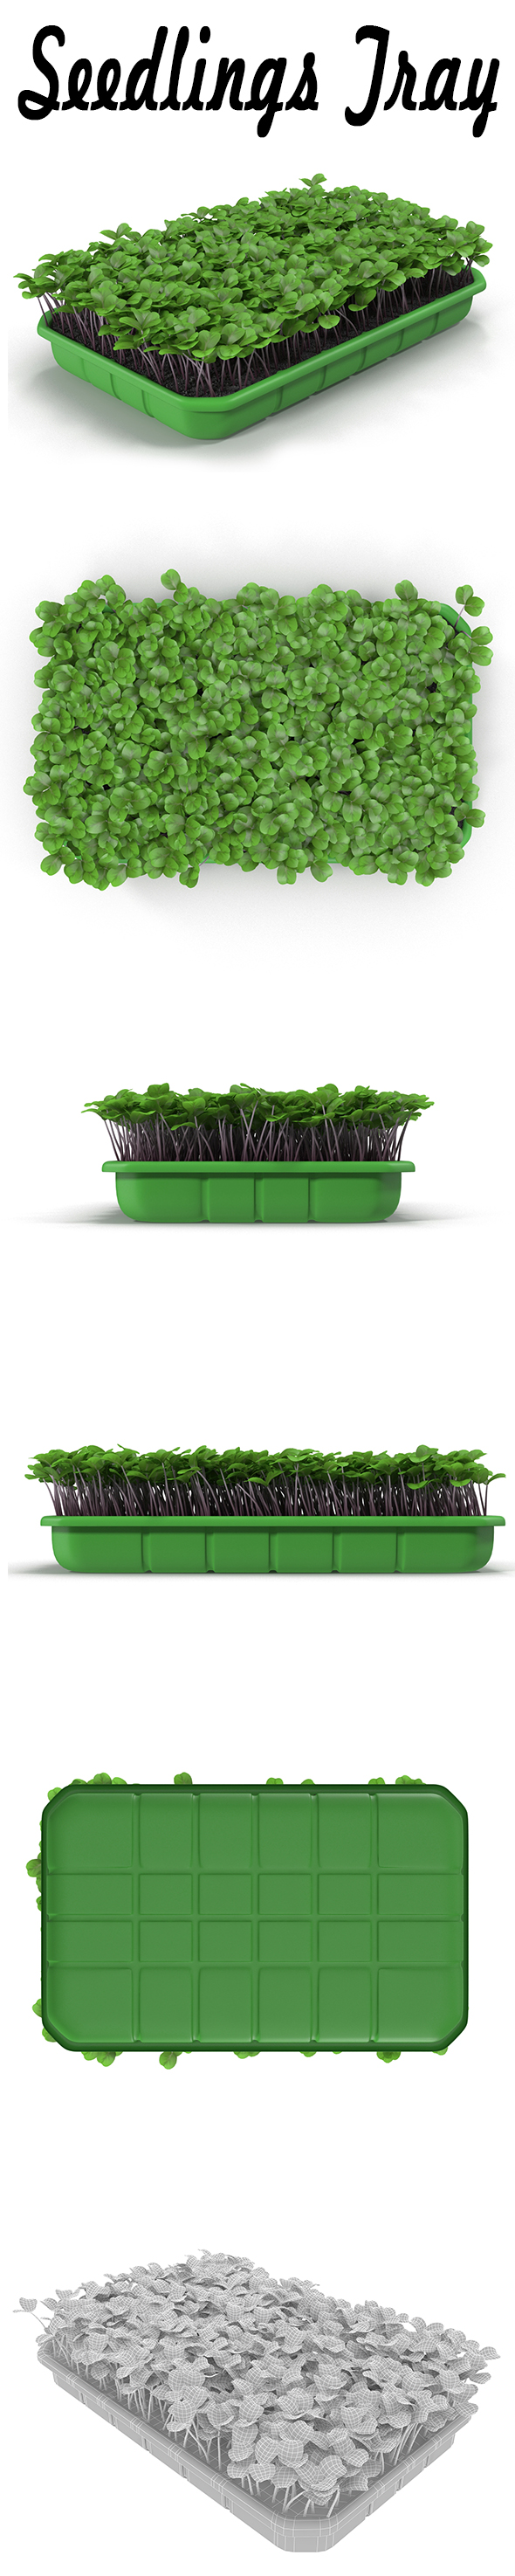 Seedlings Tray # 2 - 3DOcean Item for Sale